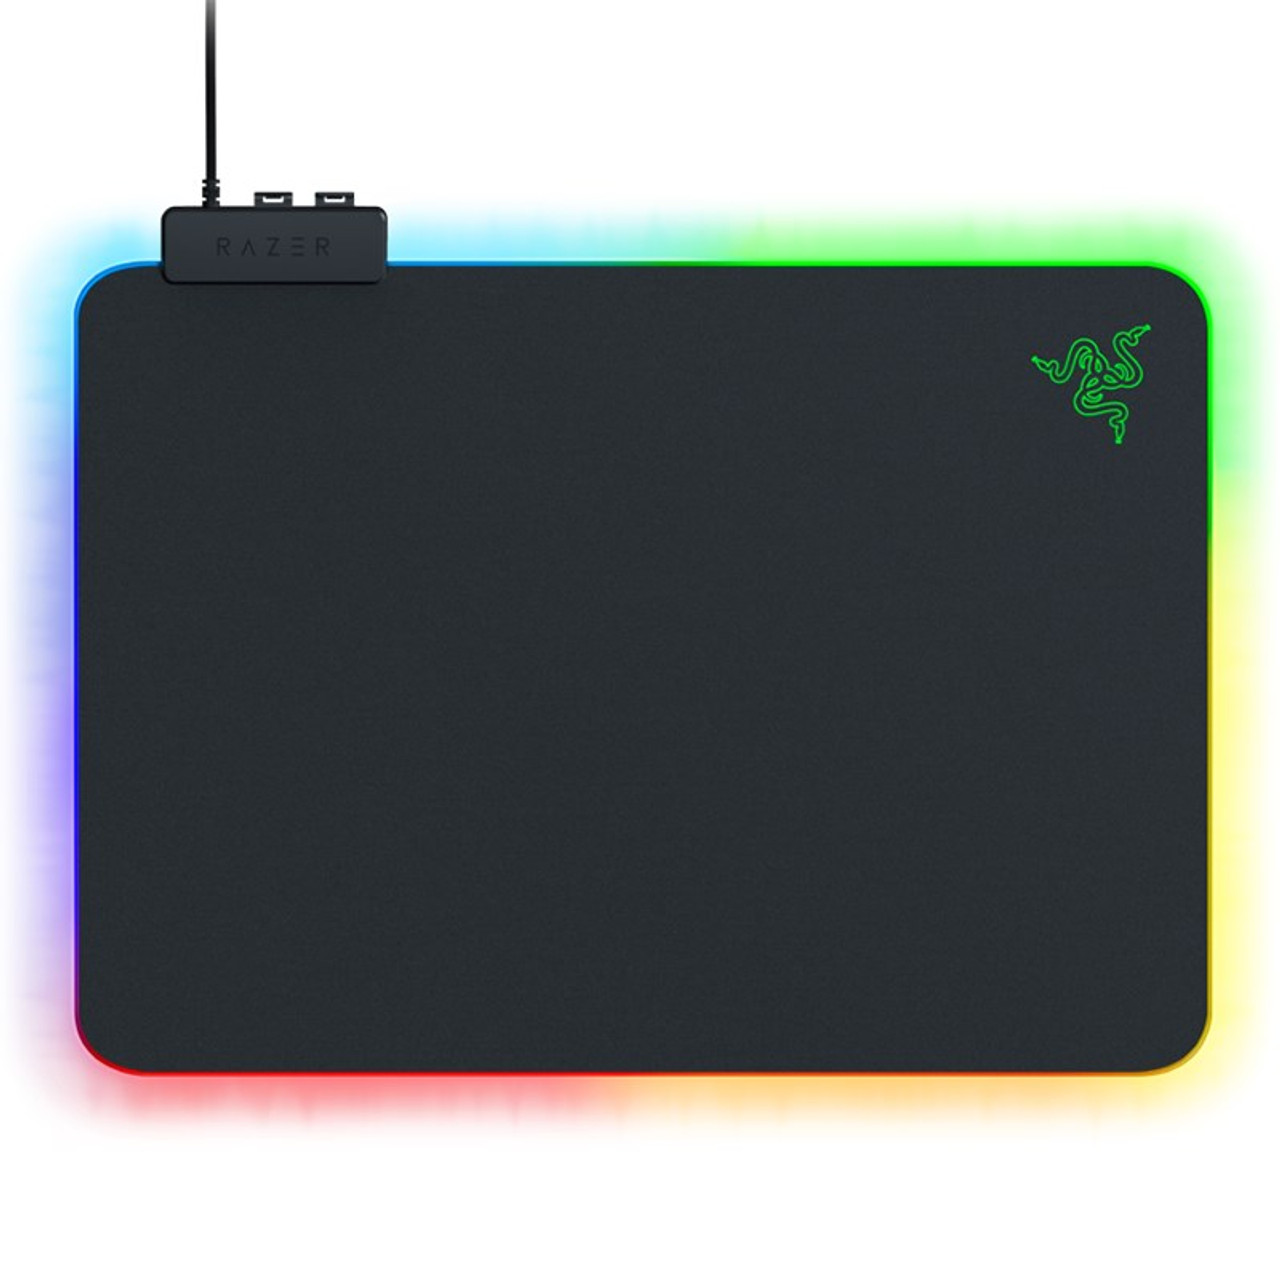 Image for Razer Firefly v2 Chroma RGB Hard Gaming Mouse Pad CX Computer Superstore